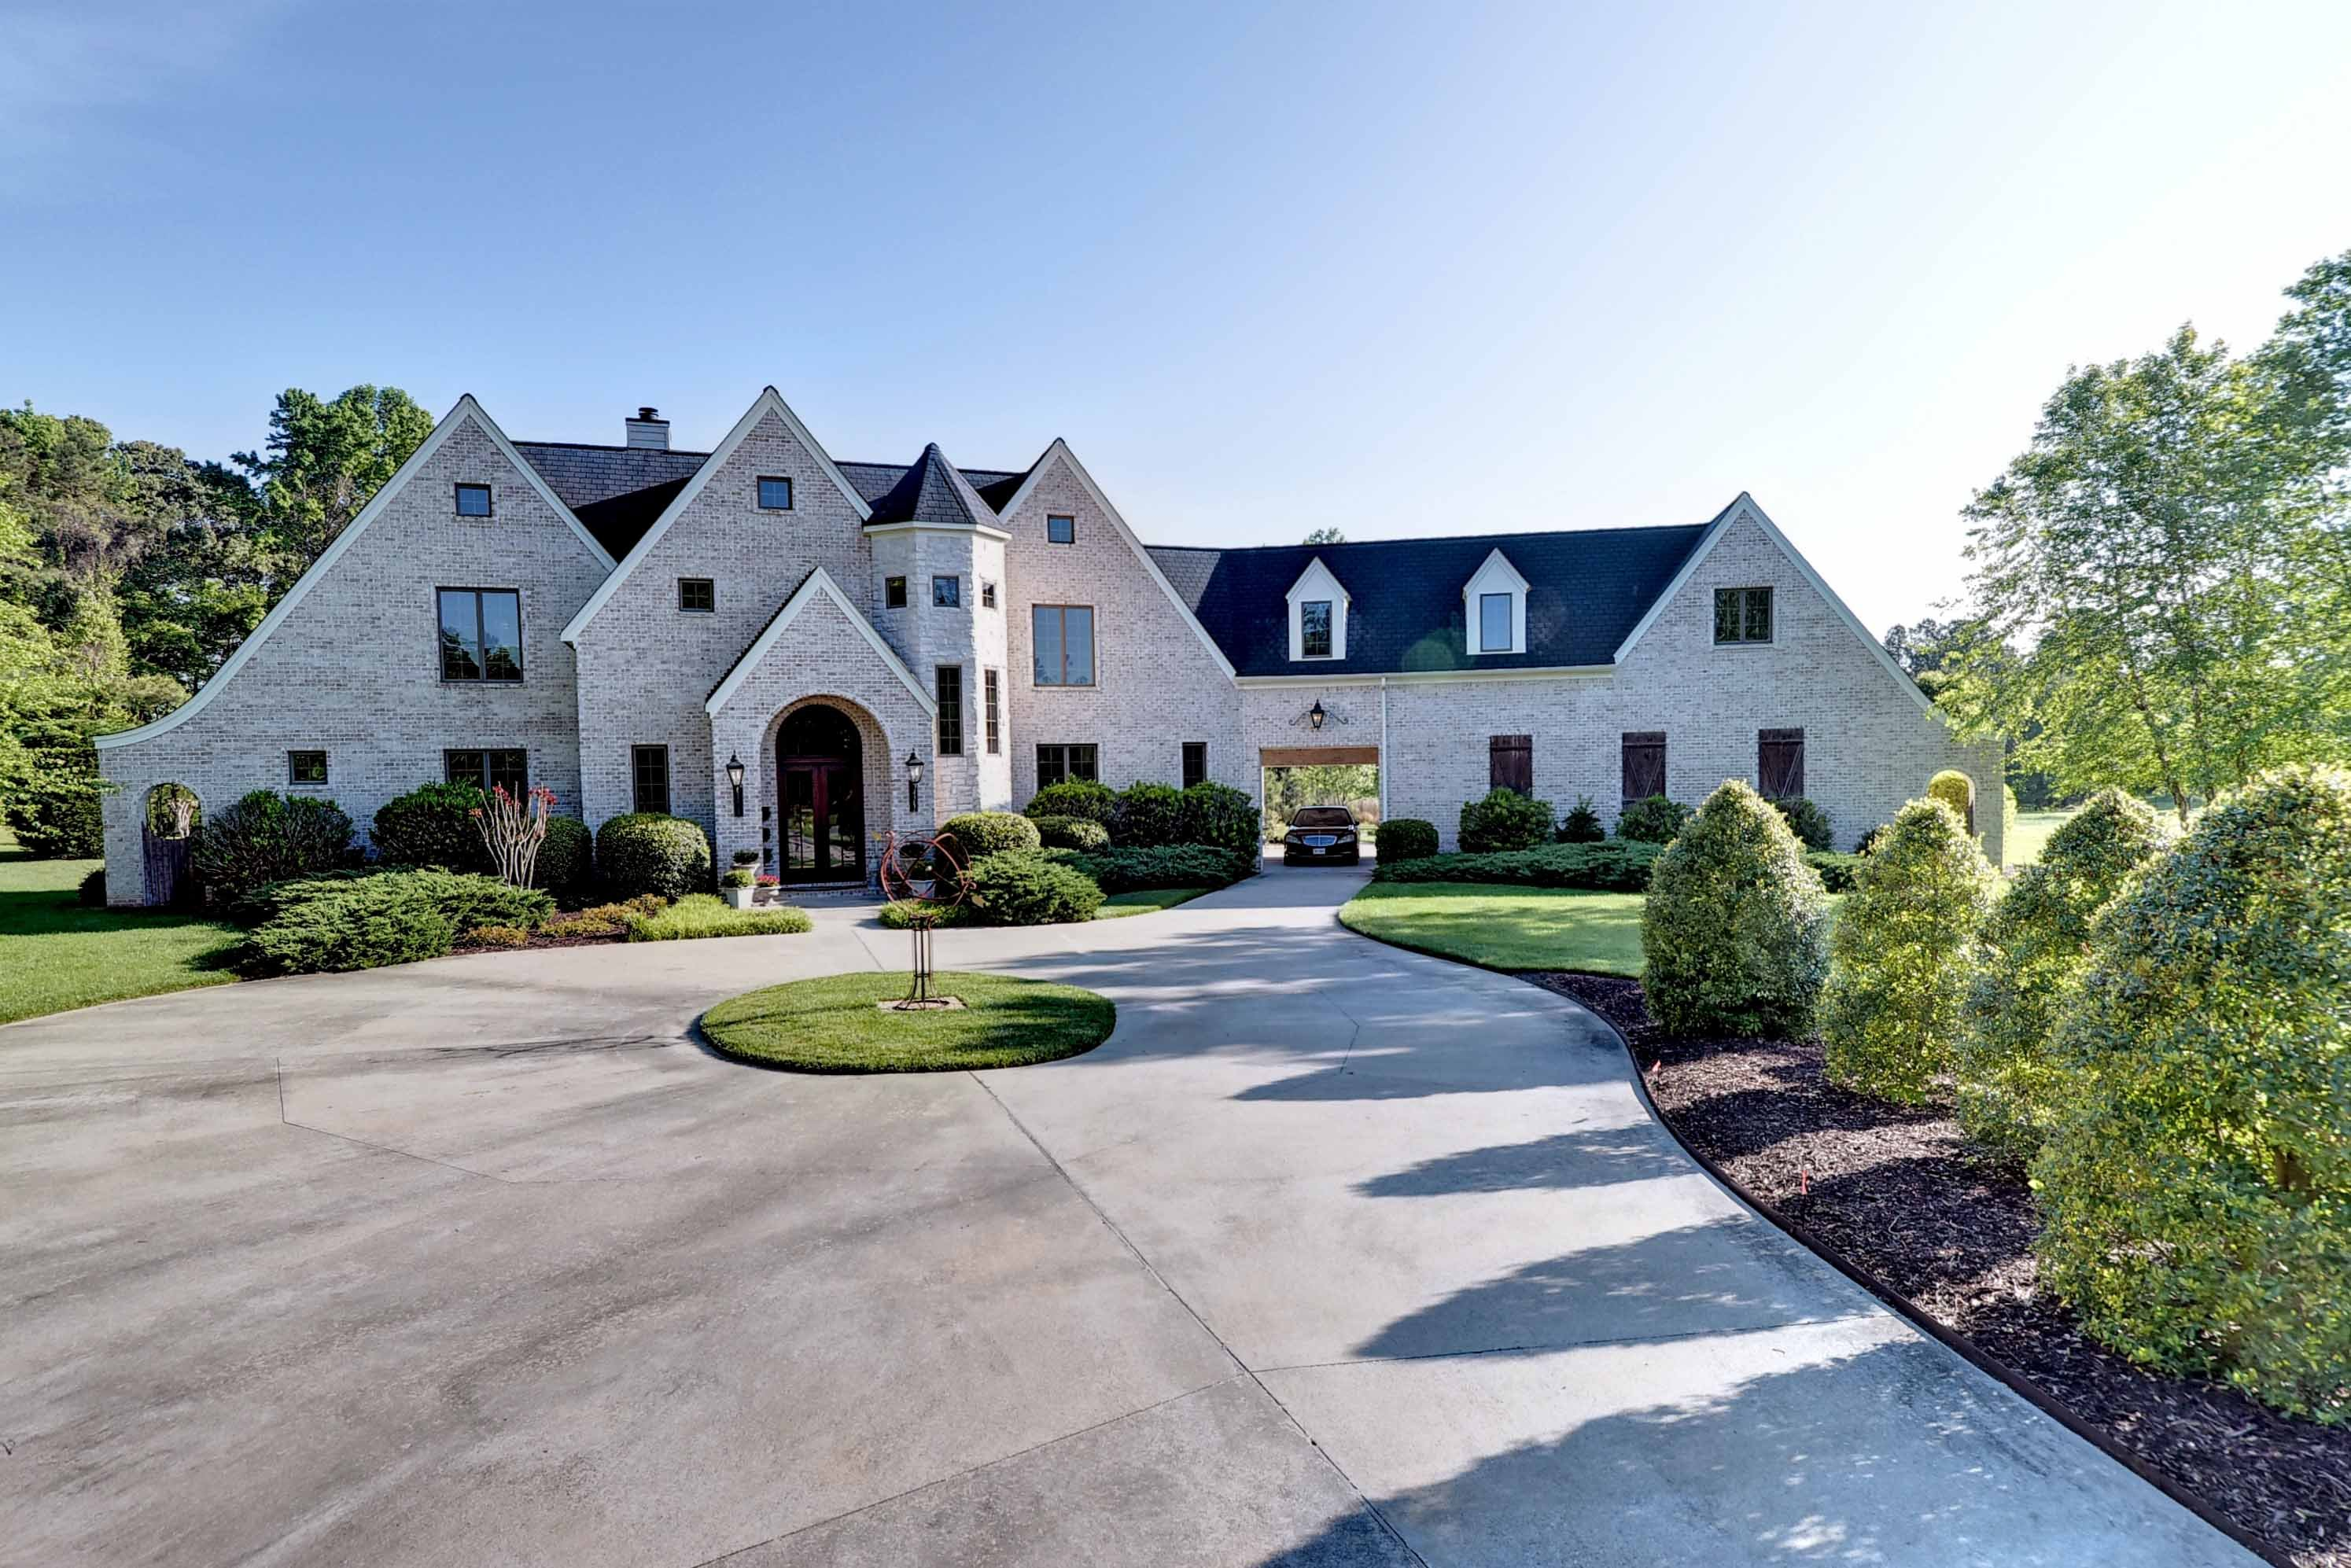 High End Luxury Homes for Sale in Williamsburg VA